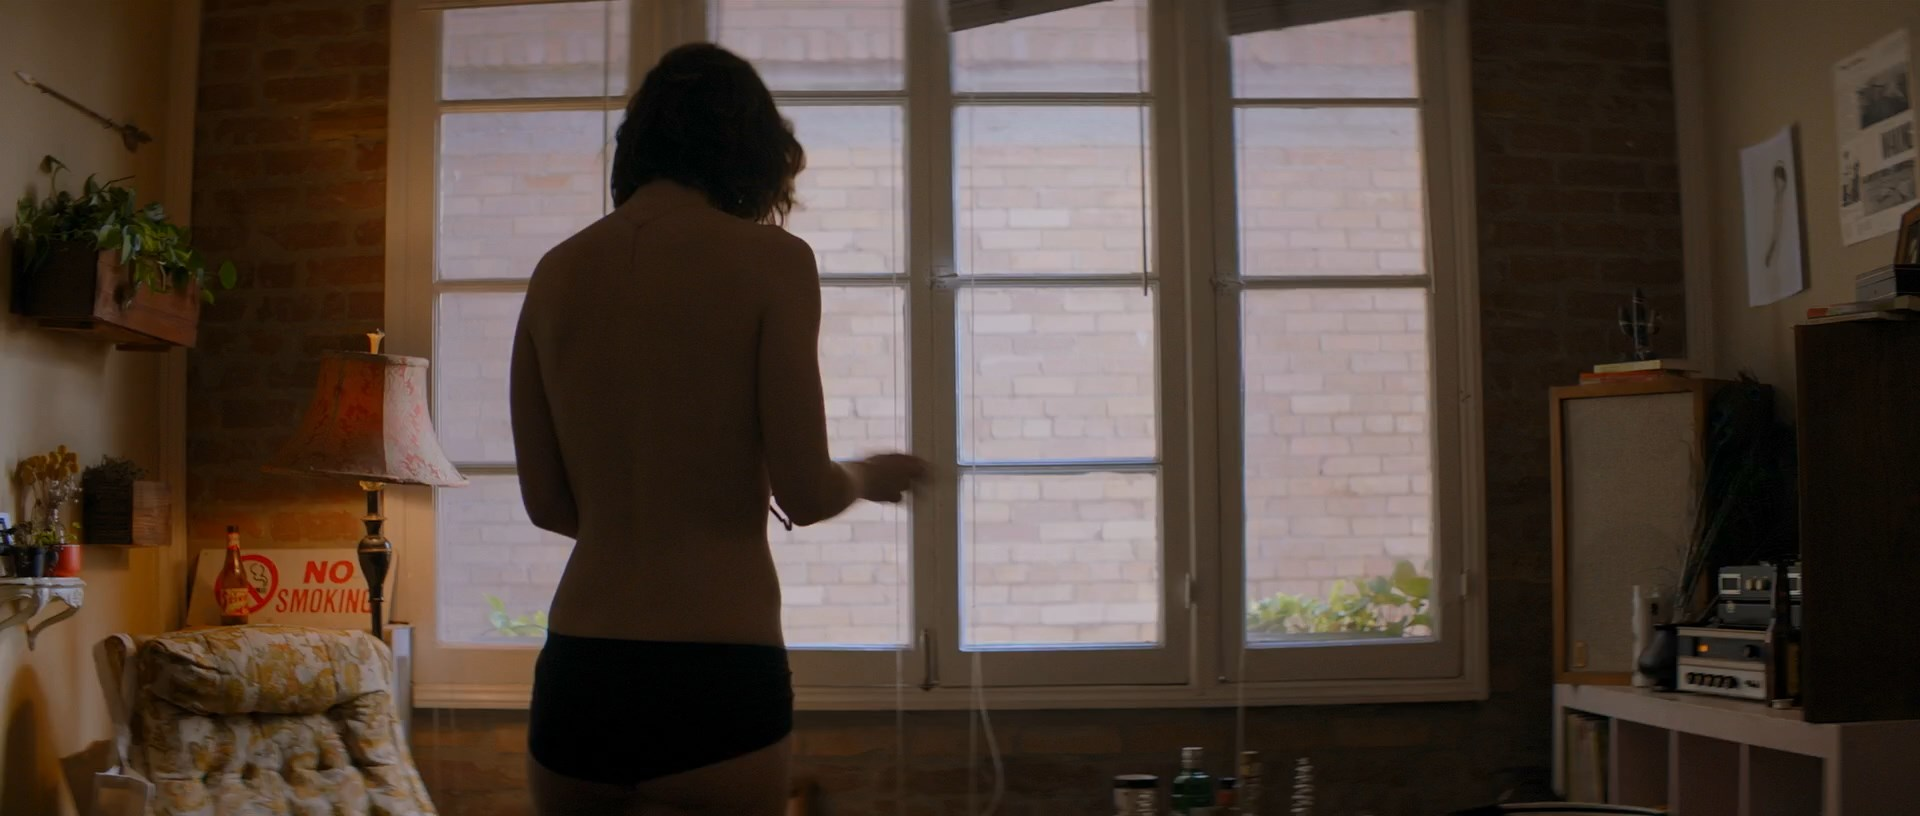 Mary Elizabeth Winstead  All About Nina  1080P  Nude -7283